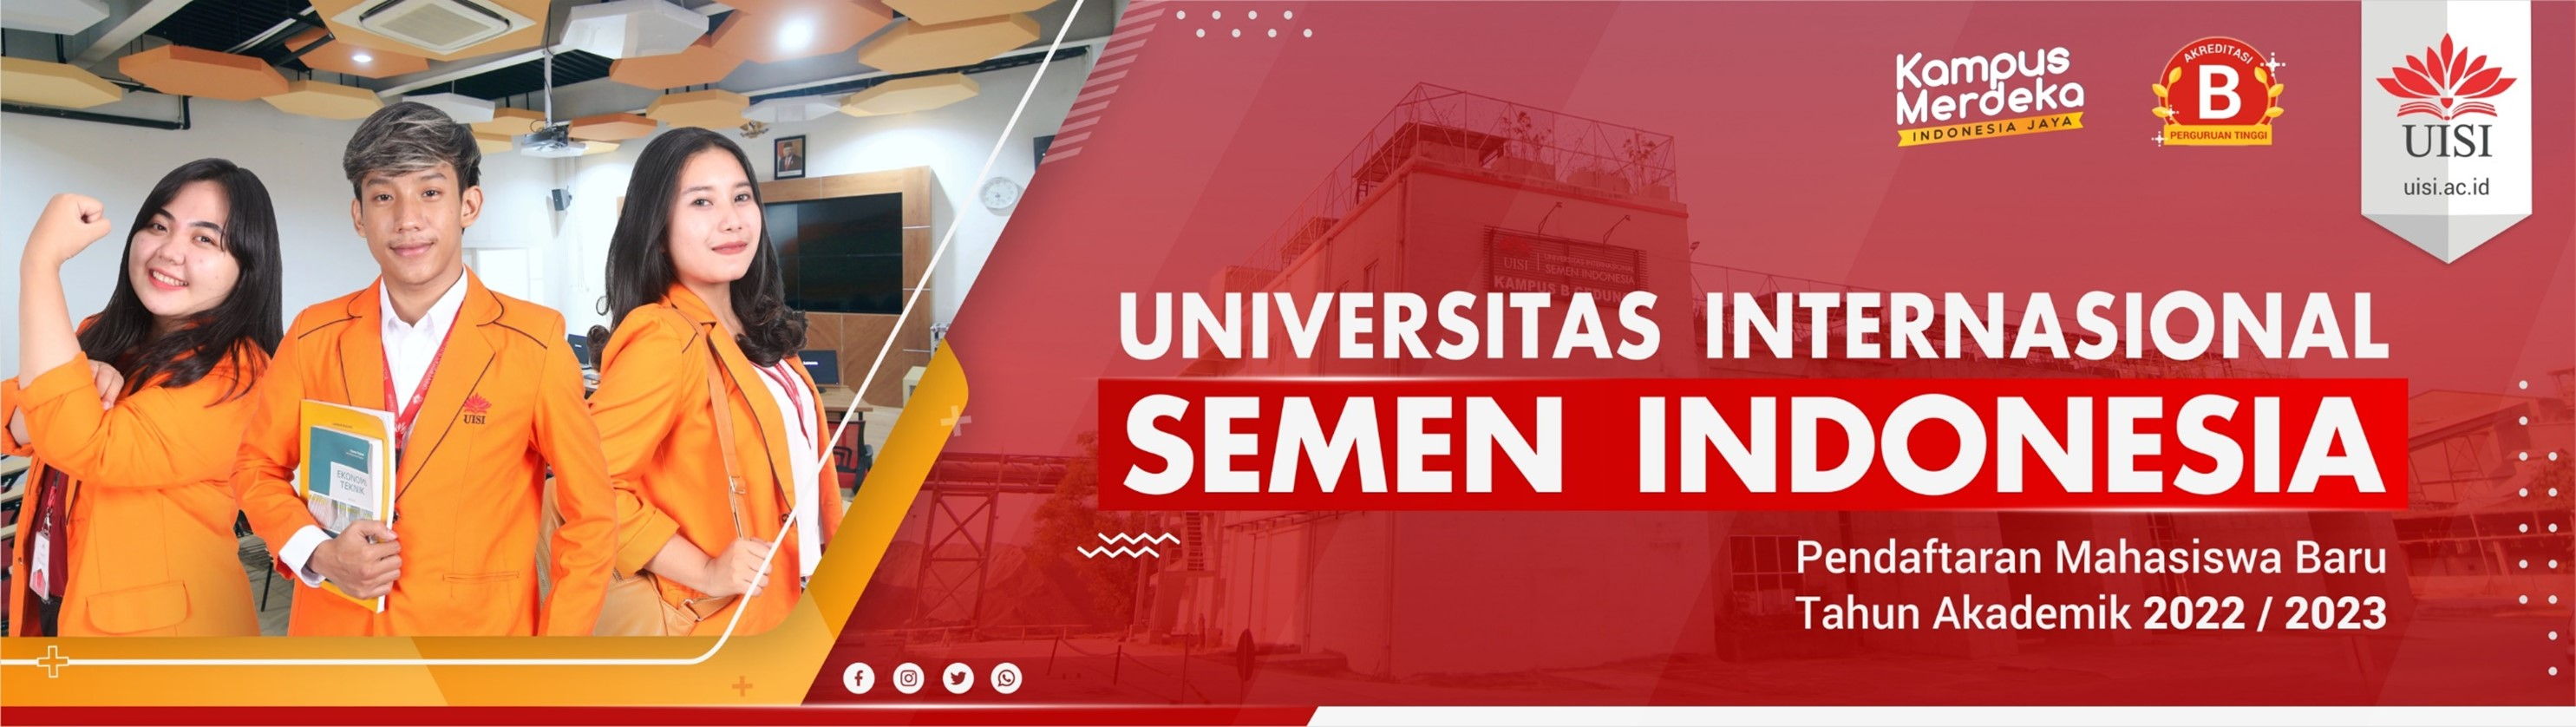 Universitas Internasional Semen Indonesia (UISI)